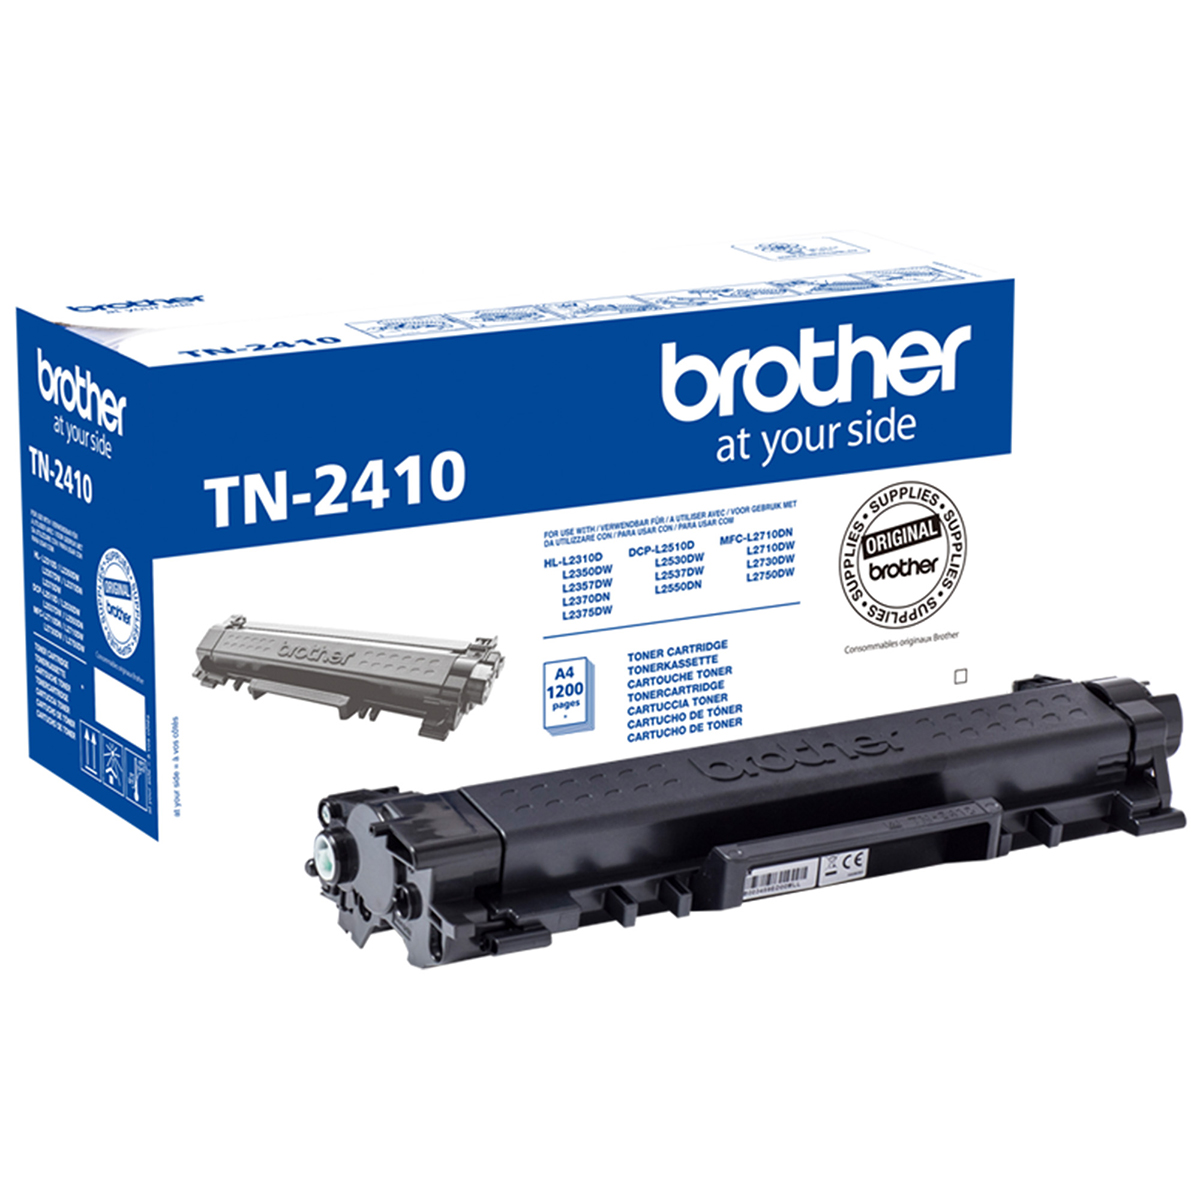 Brother TN2410 Black Toner 1200 Page Yield